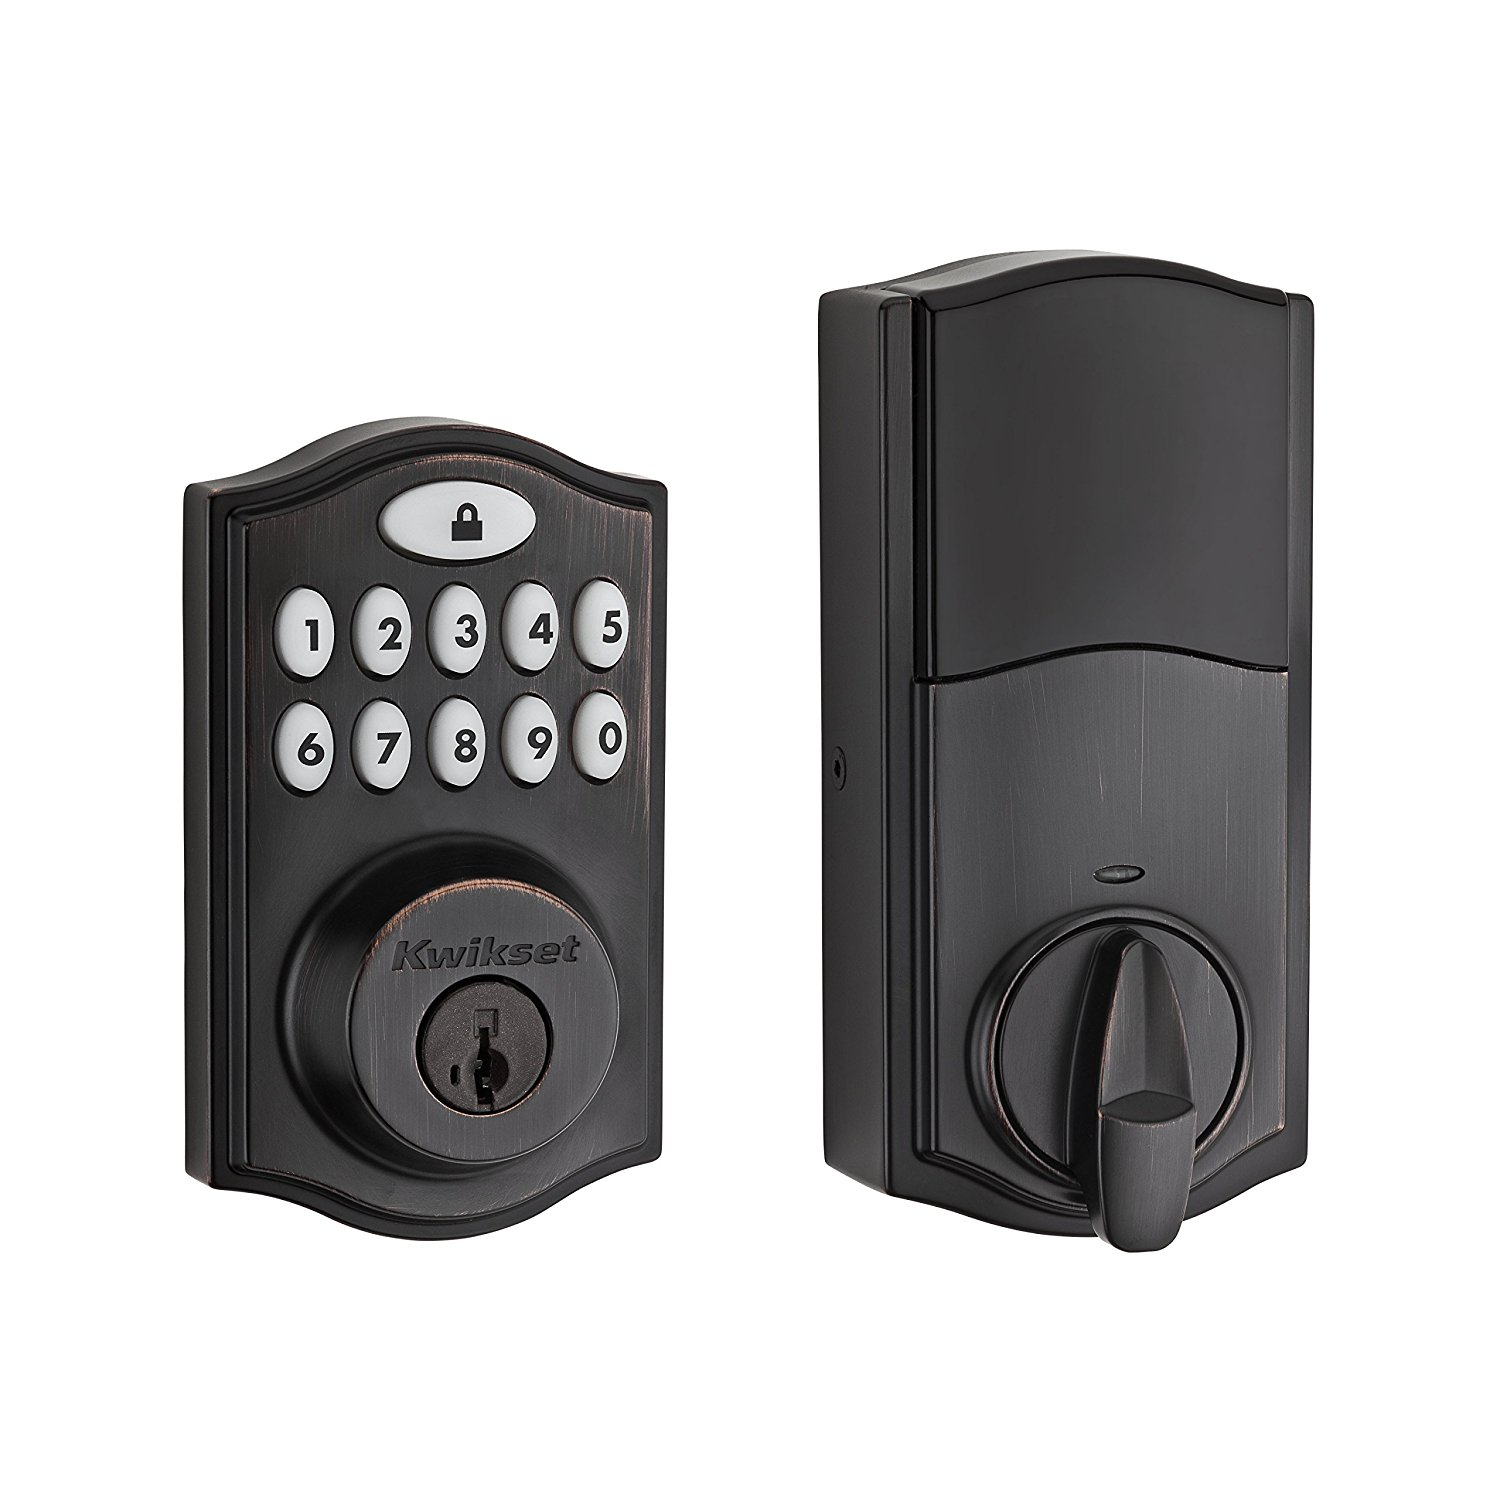 Deadbolt - The deadbolt style smart lock is the most common lock replacement. Available in most standard colors and different styles you can find one to match your home.